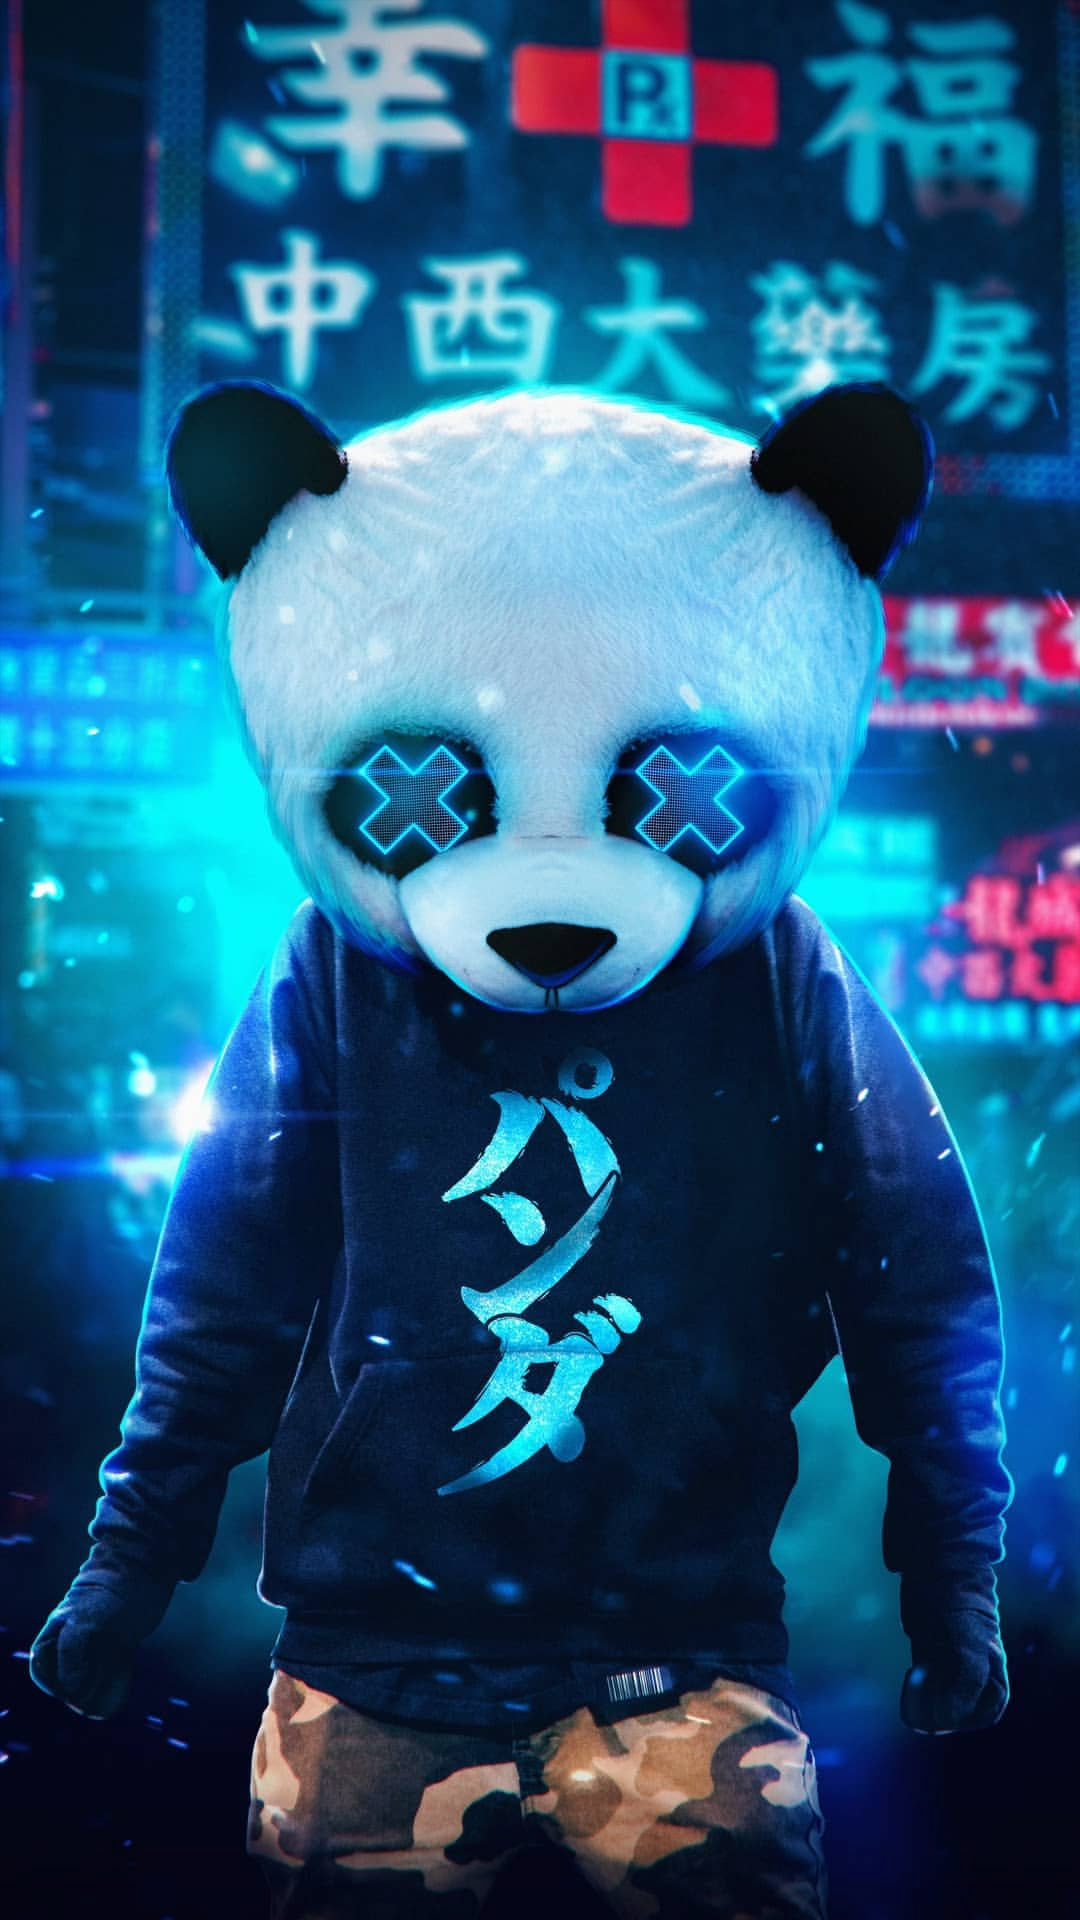 Wallpaper panda lets play